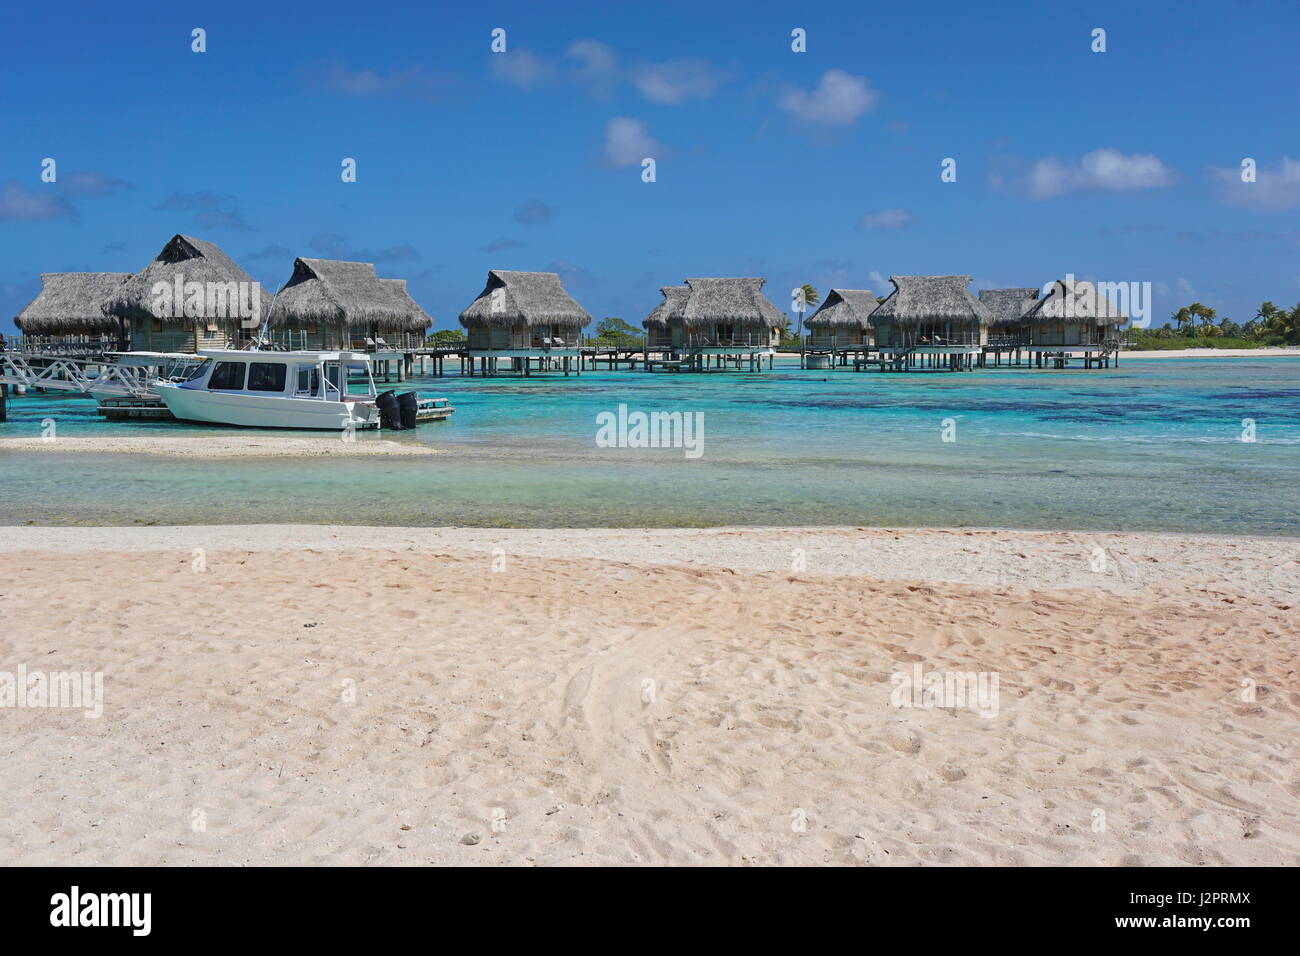 Tropical overwater bungalows in the lagoon seen from a sandy beach shore, atoll of Tikehau, Tuamotu, French Polynesia, - Stock Image